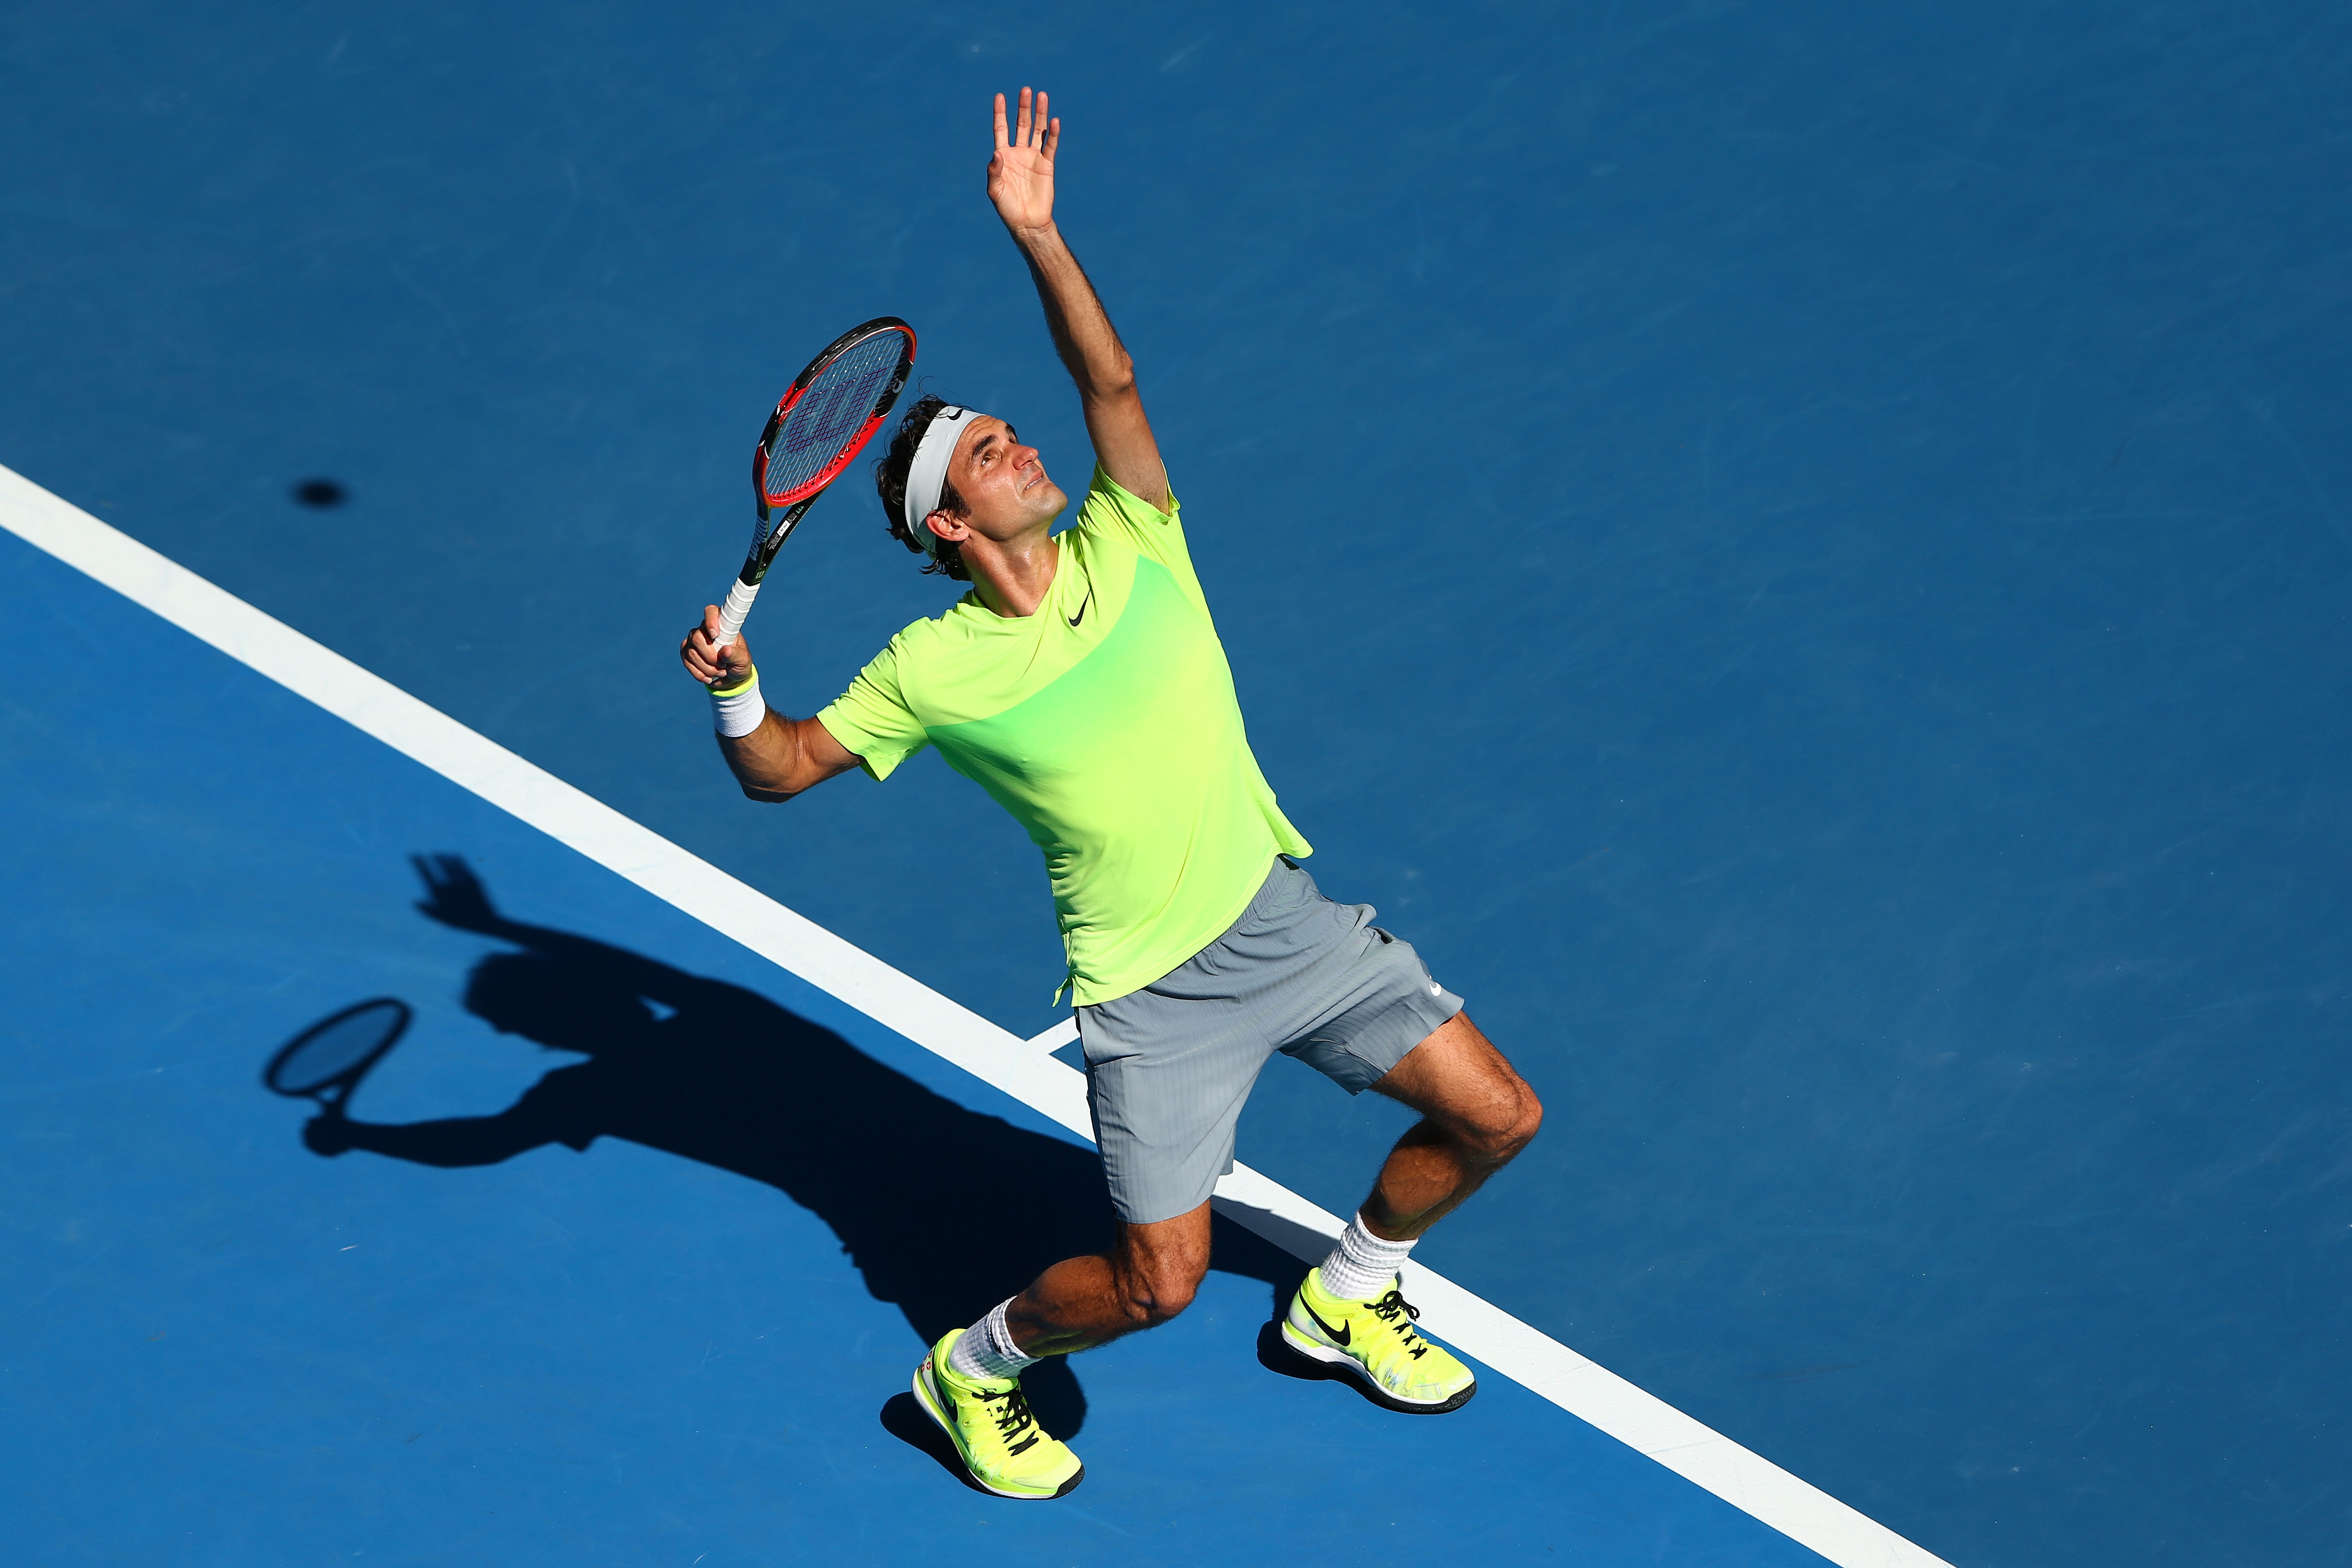 It's a rare sight to see Federer in fluorescent colors. And rarer still, after his third round loss.